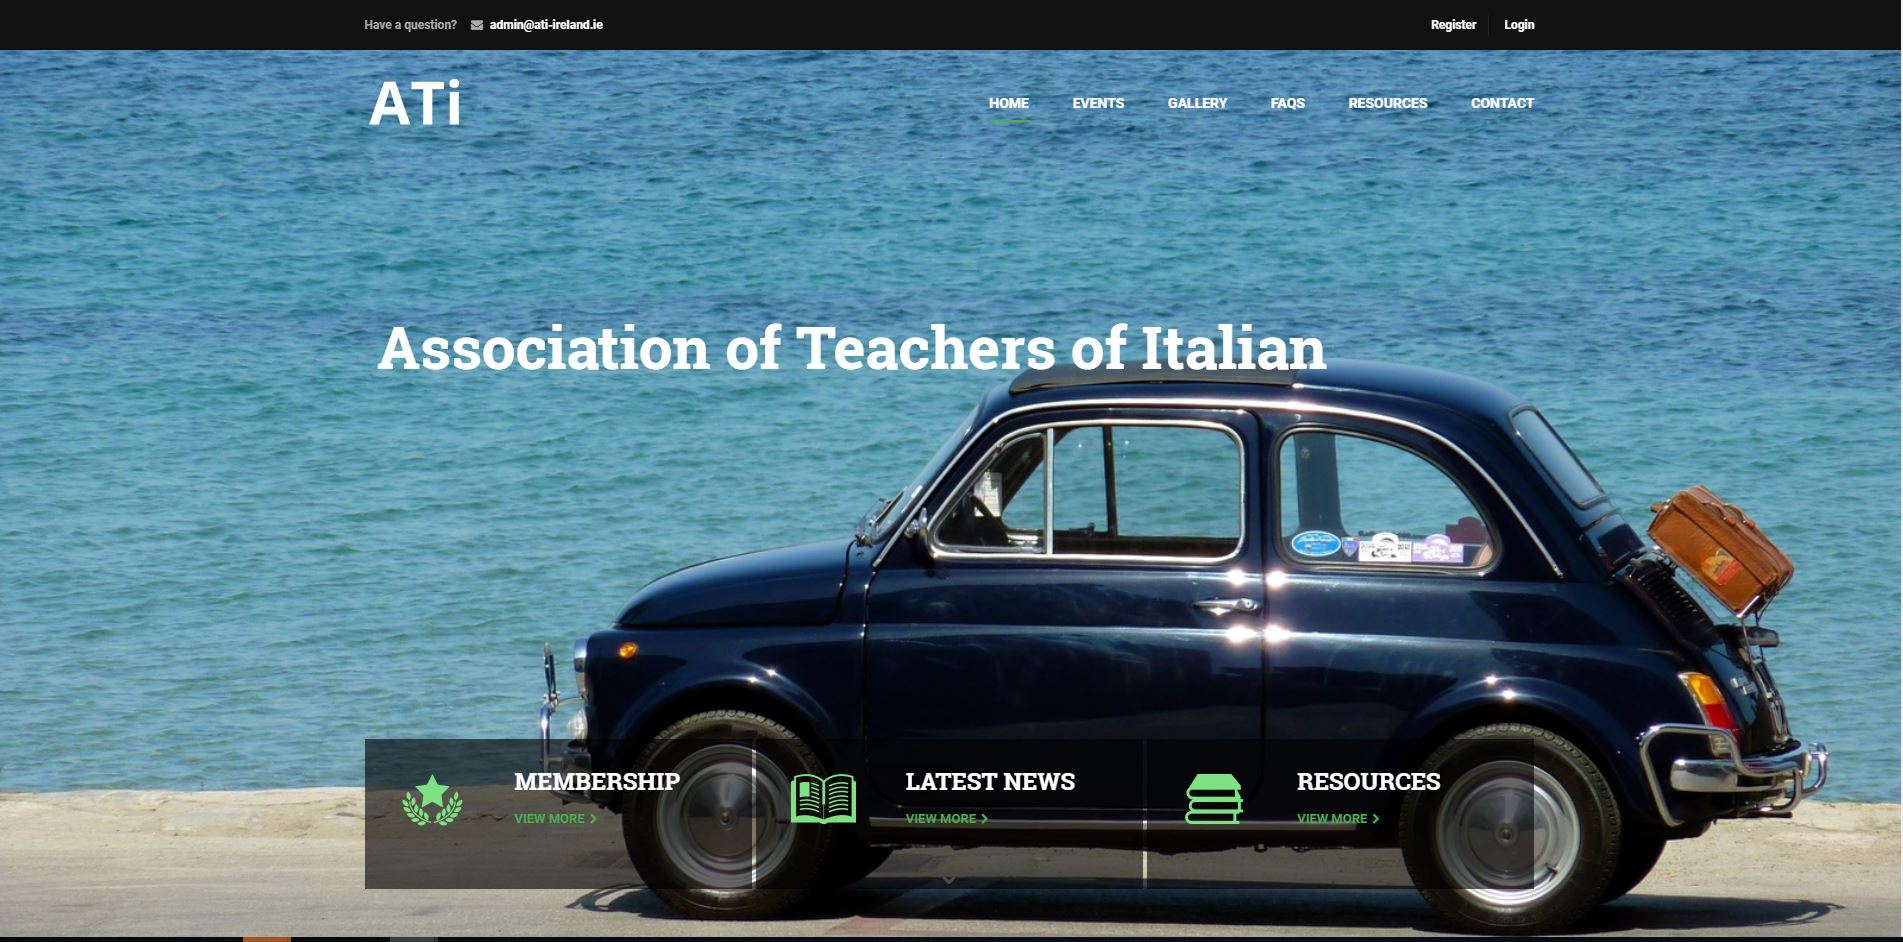 Association of Teachers of Italian